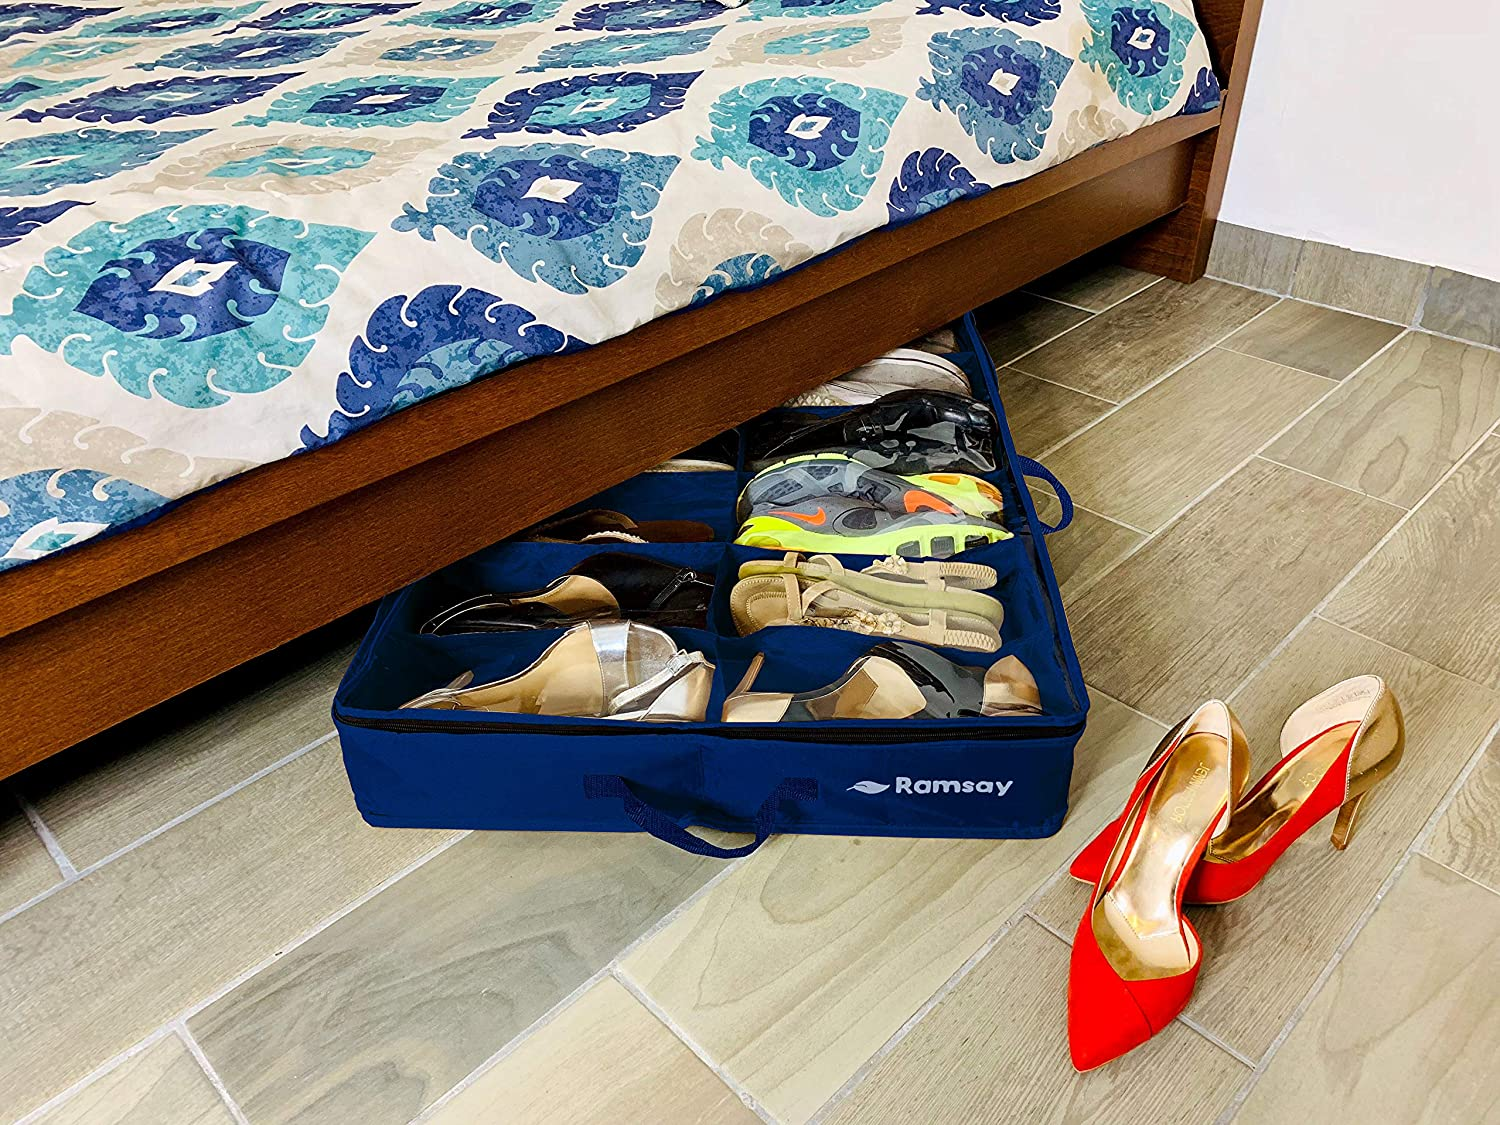 Sturdy Underbed Shoe Storage.Ramsay Under Under Bed Shoe Storage Organizer Strong And Sturdy Double Dust Free Design Space Saver 12 Pair Front Zippered Closure Blue